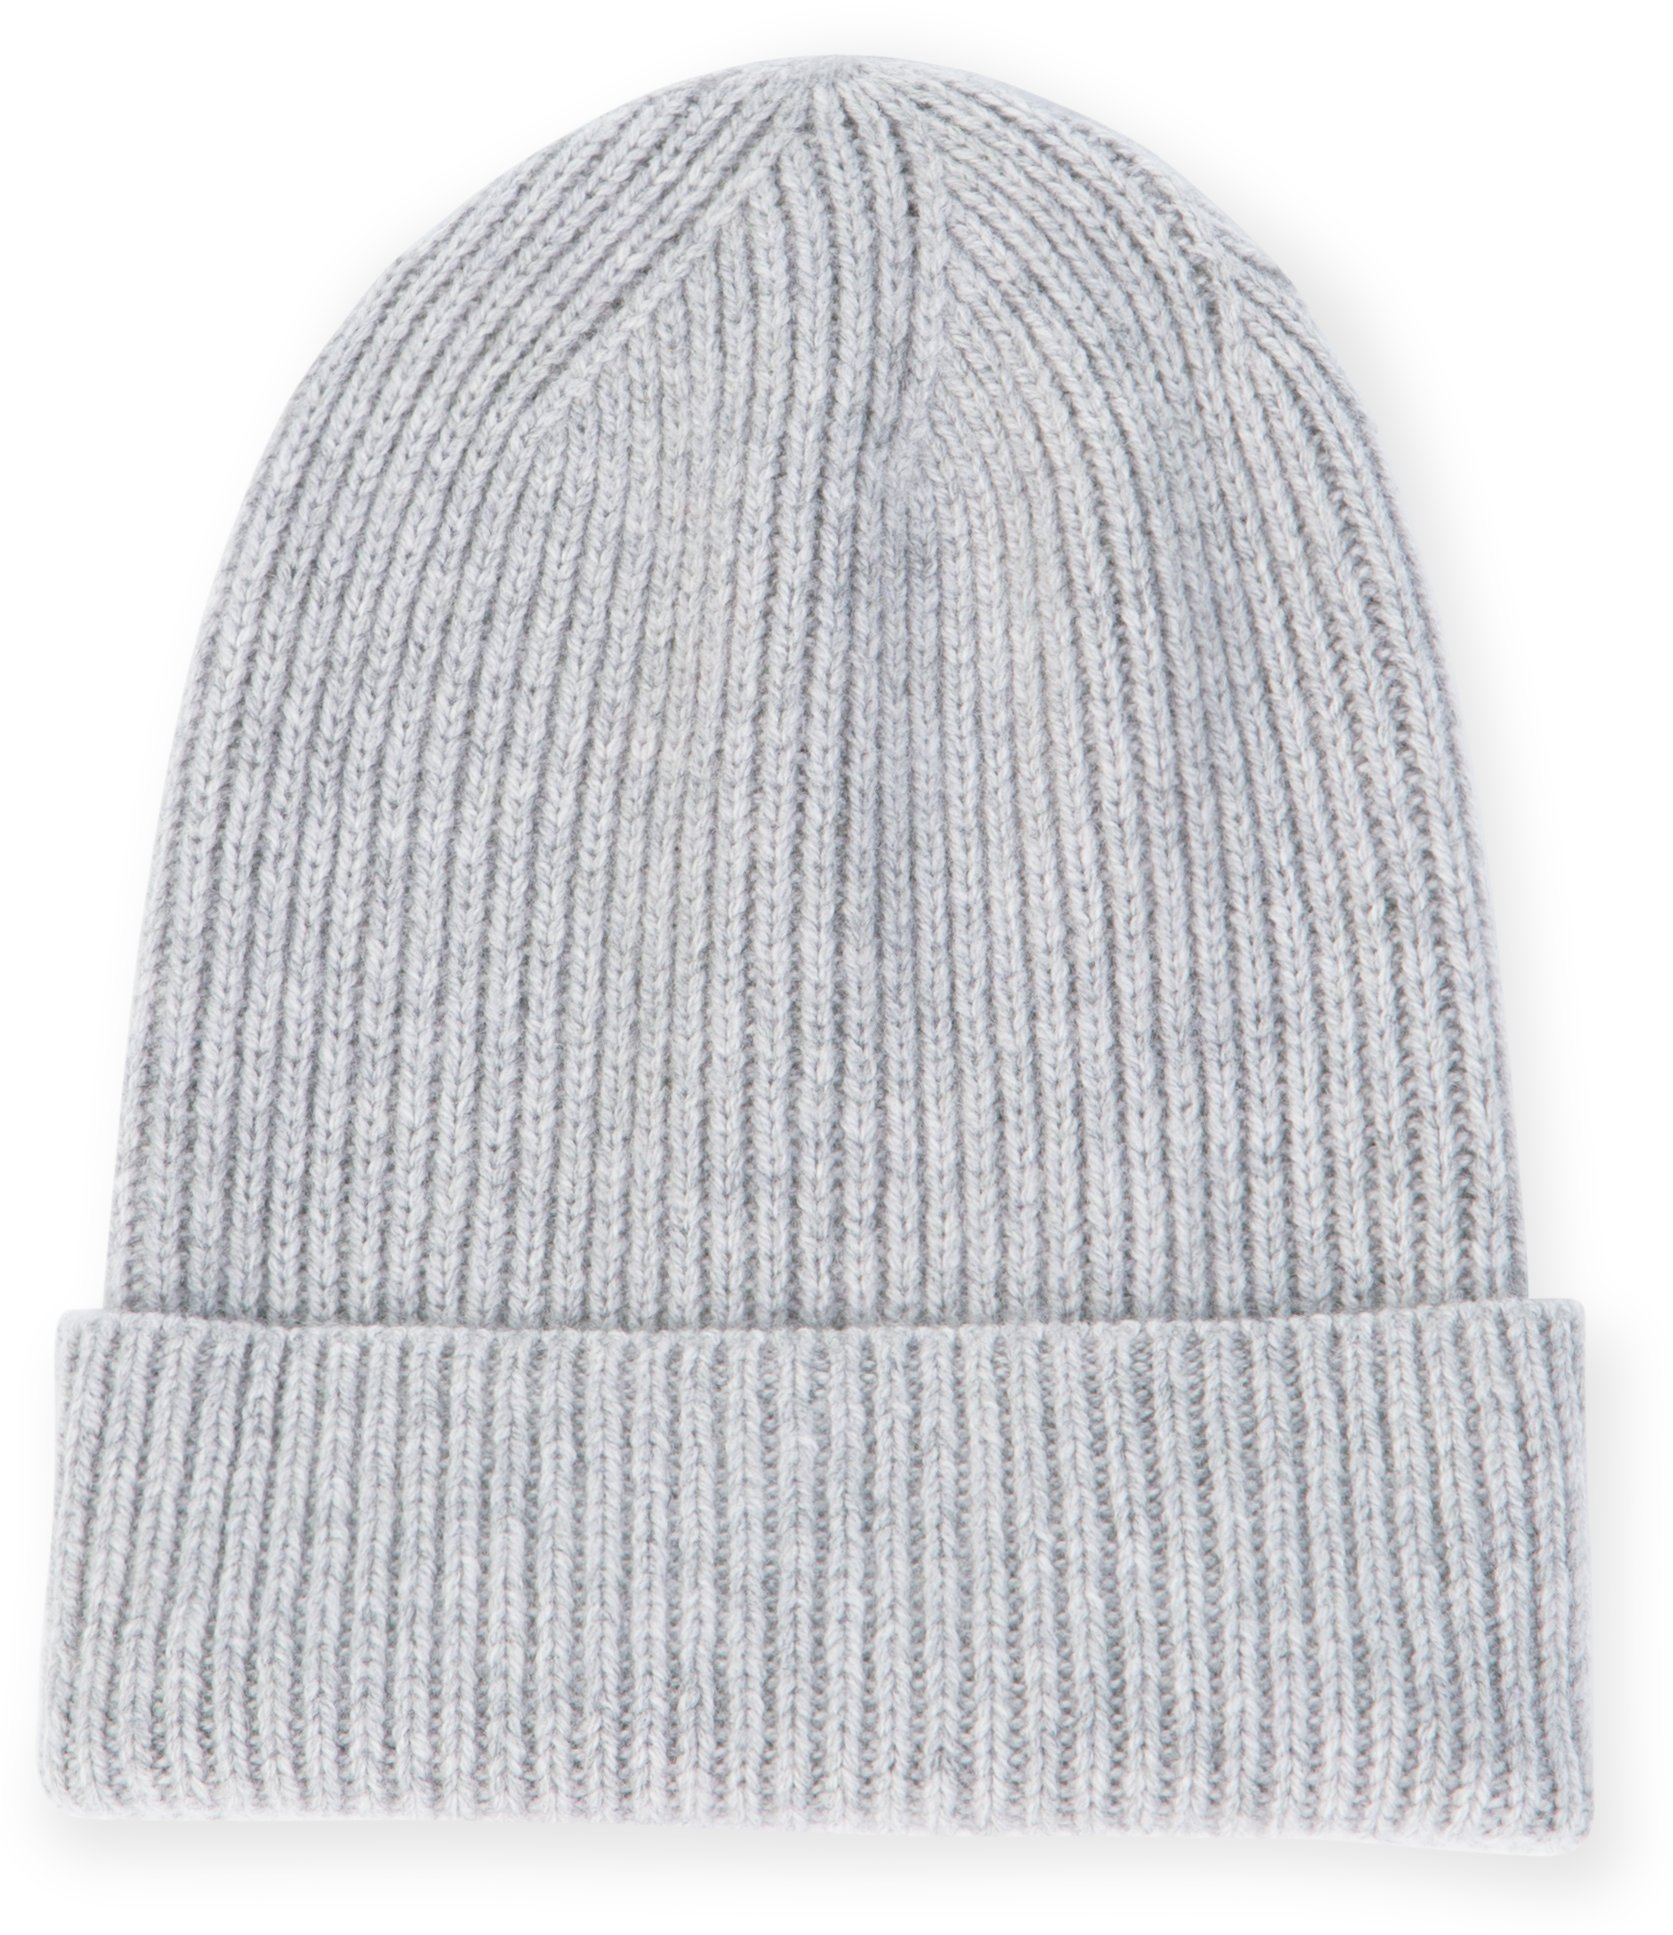 UAS Assembly Beanie, LIGHT HEATHER GRAY